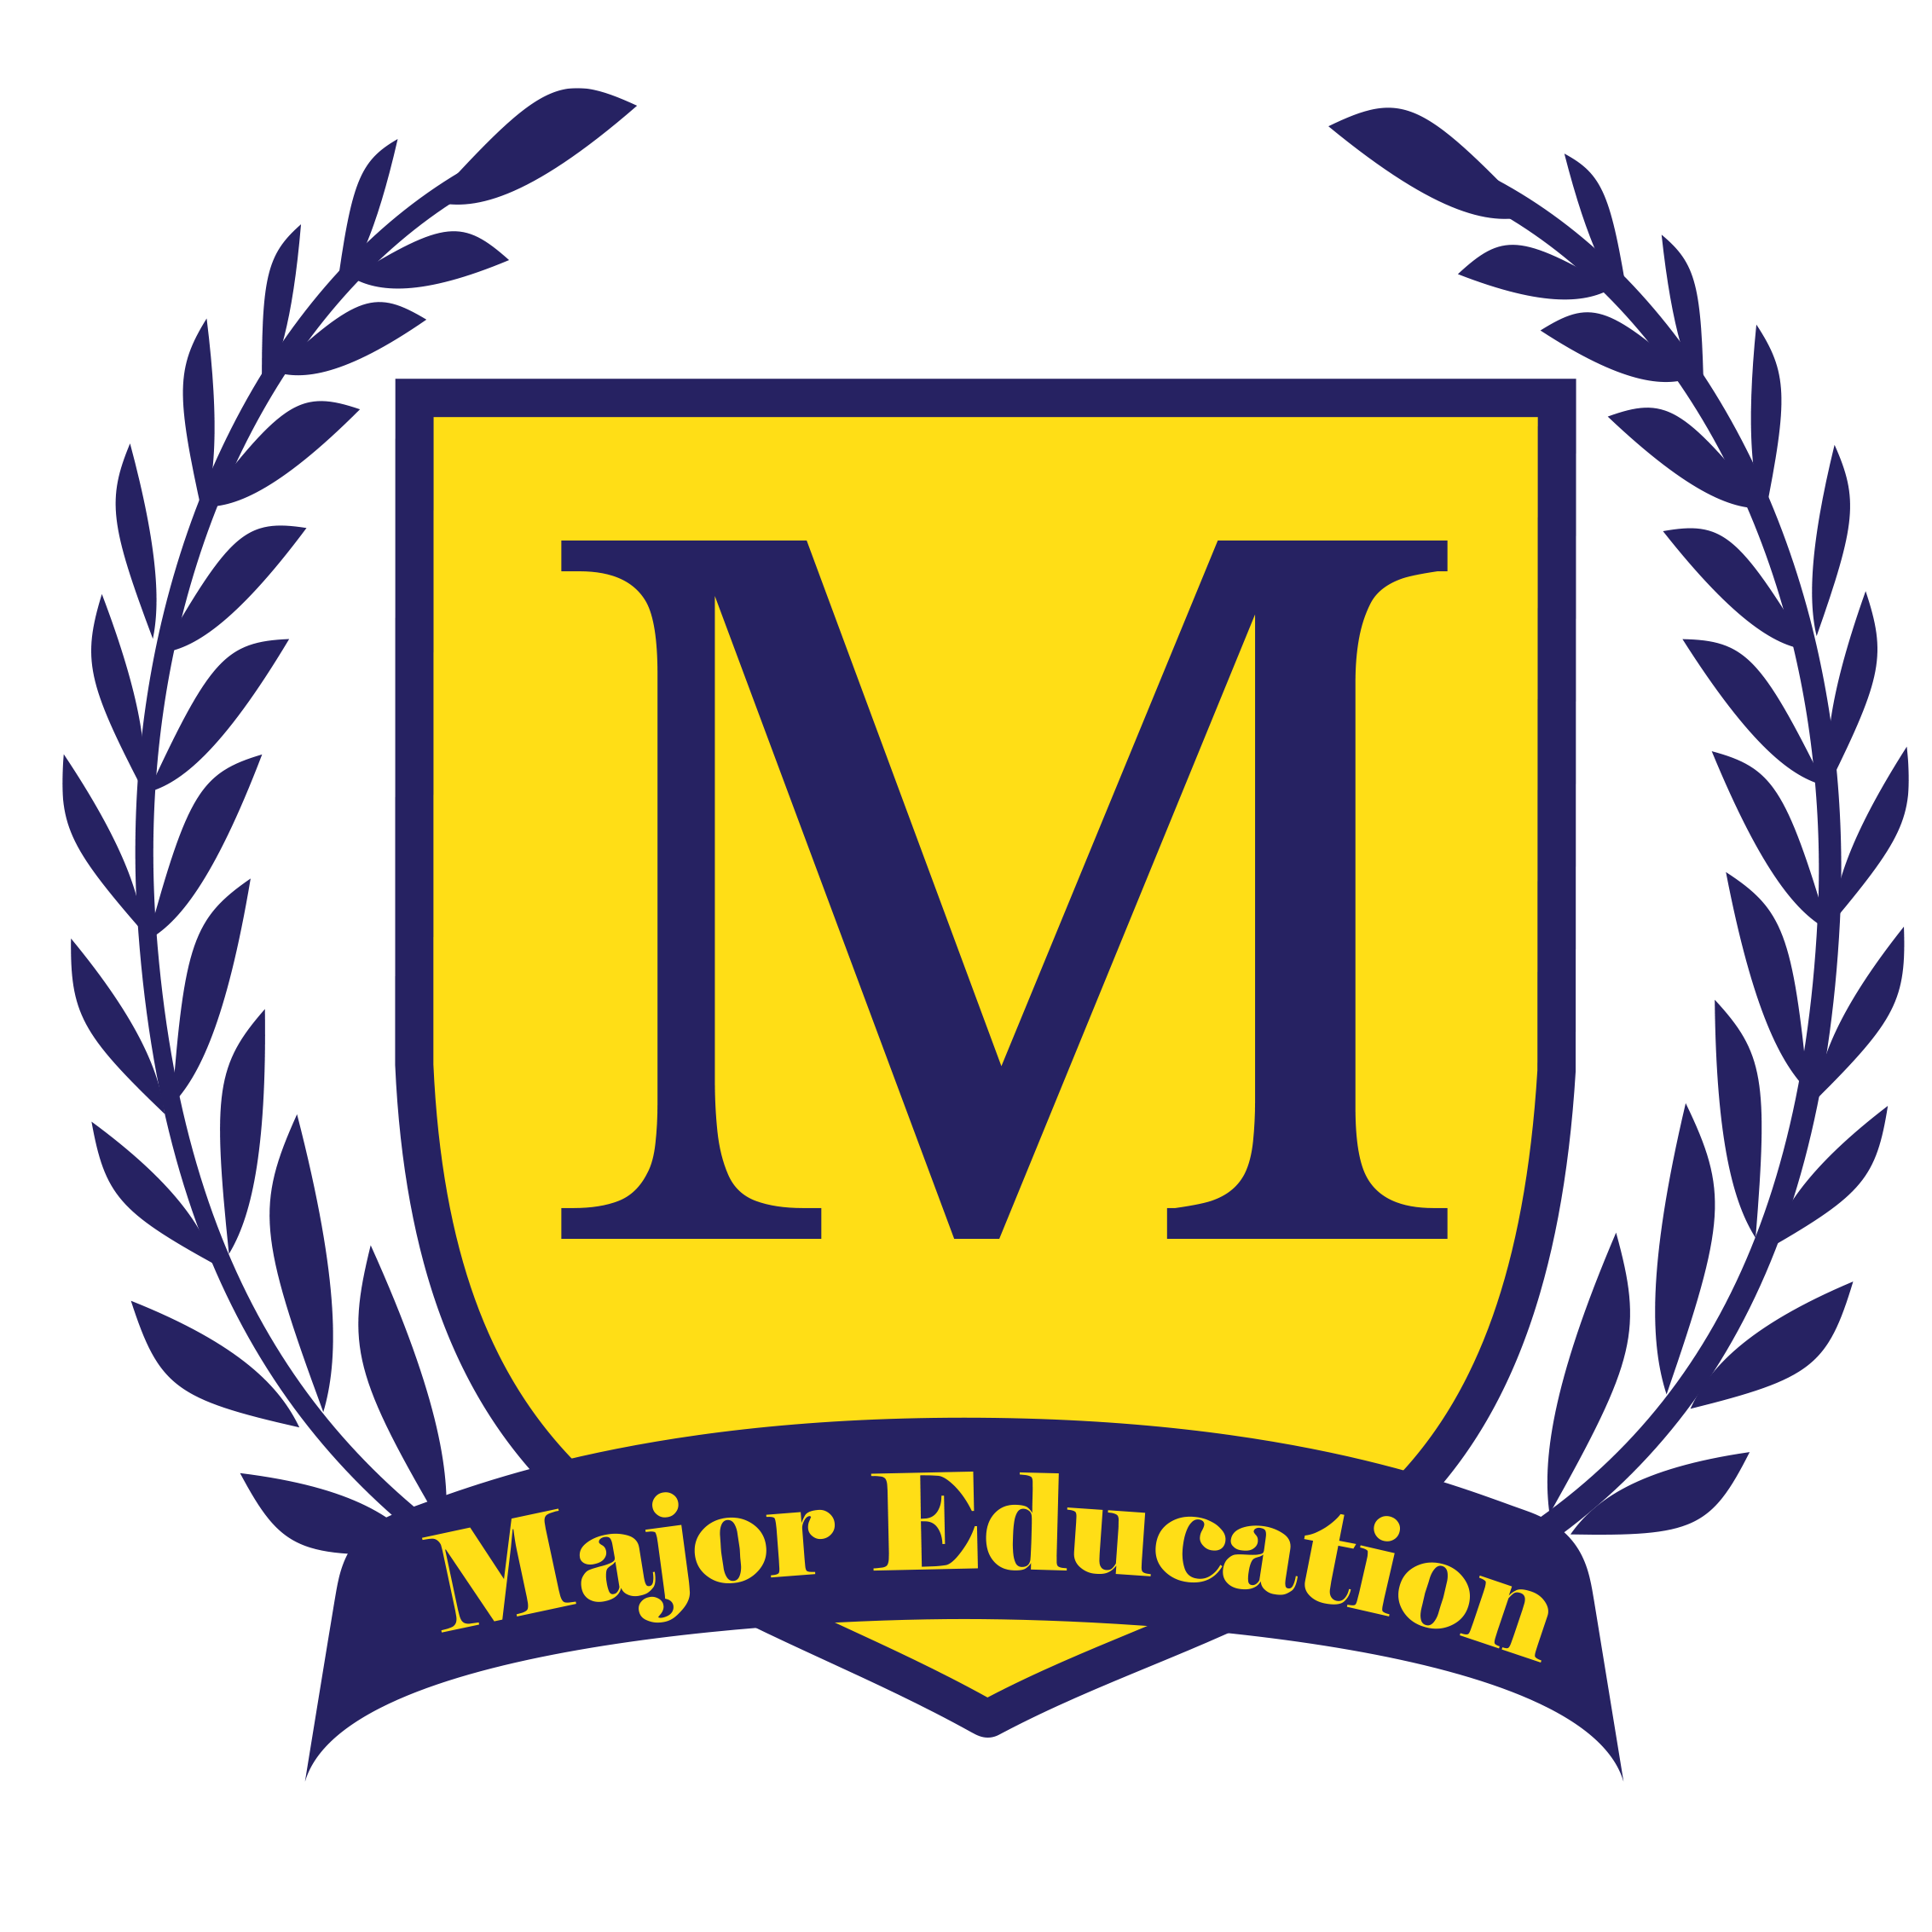 Major Education